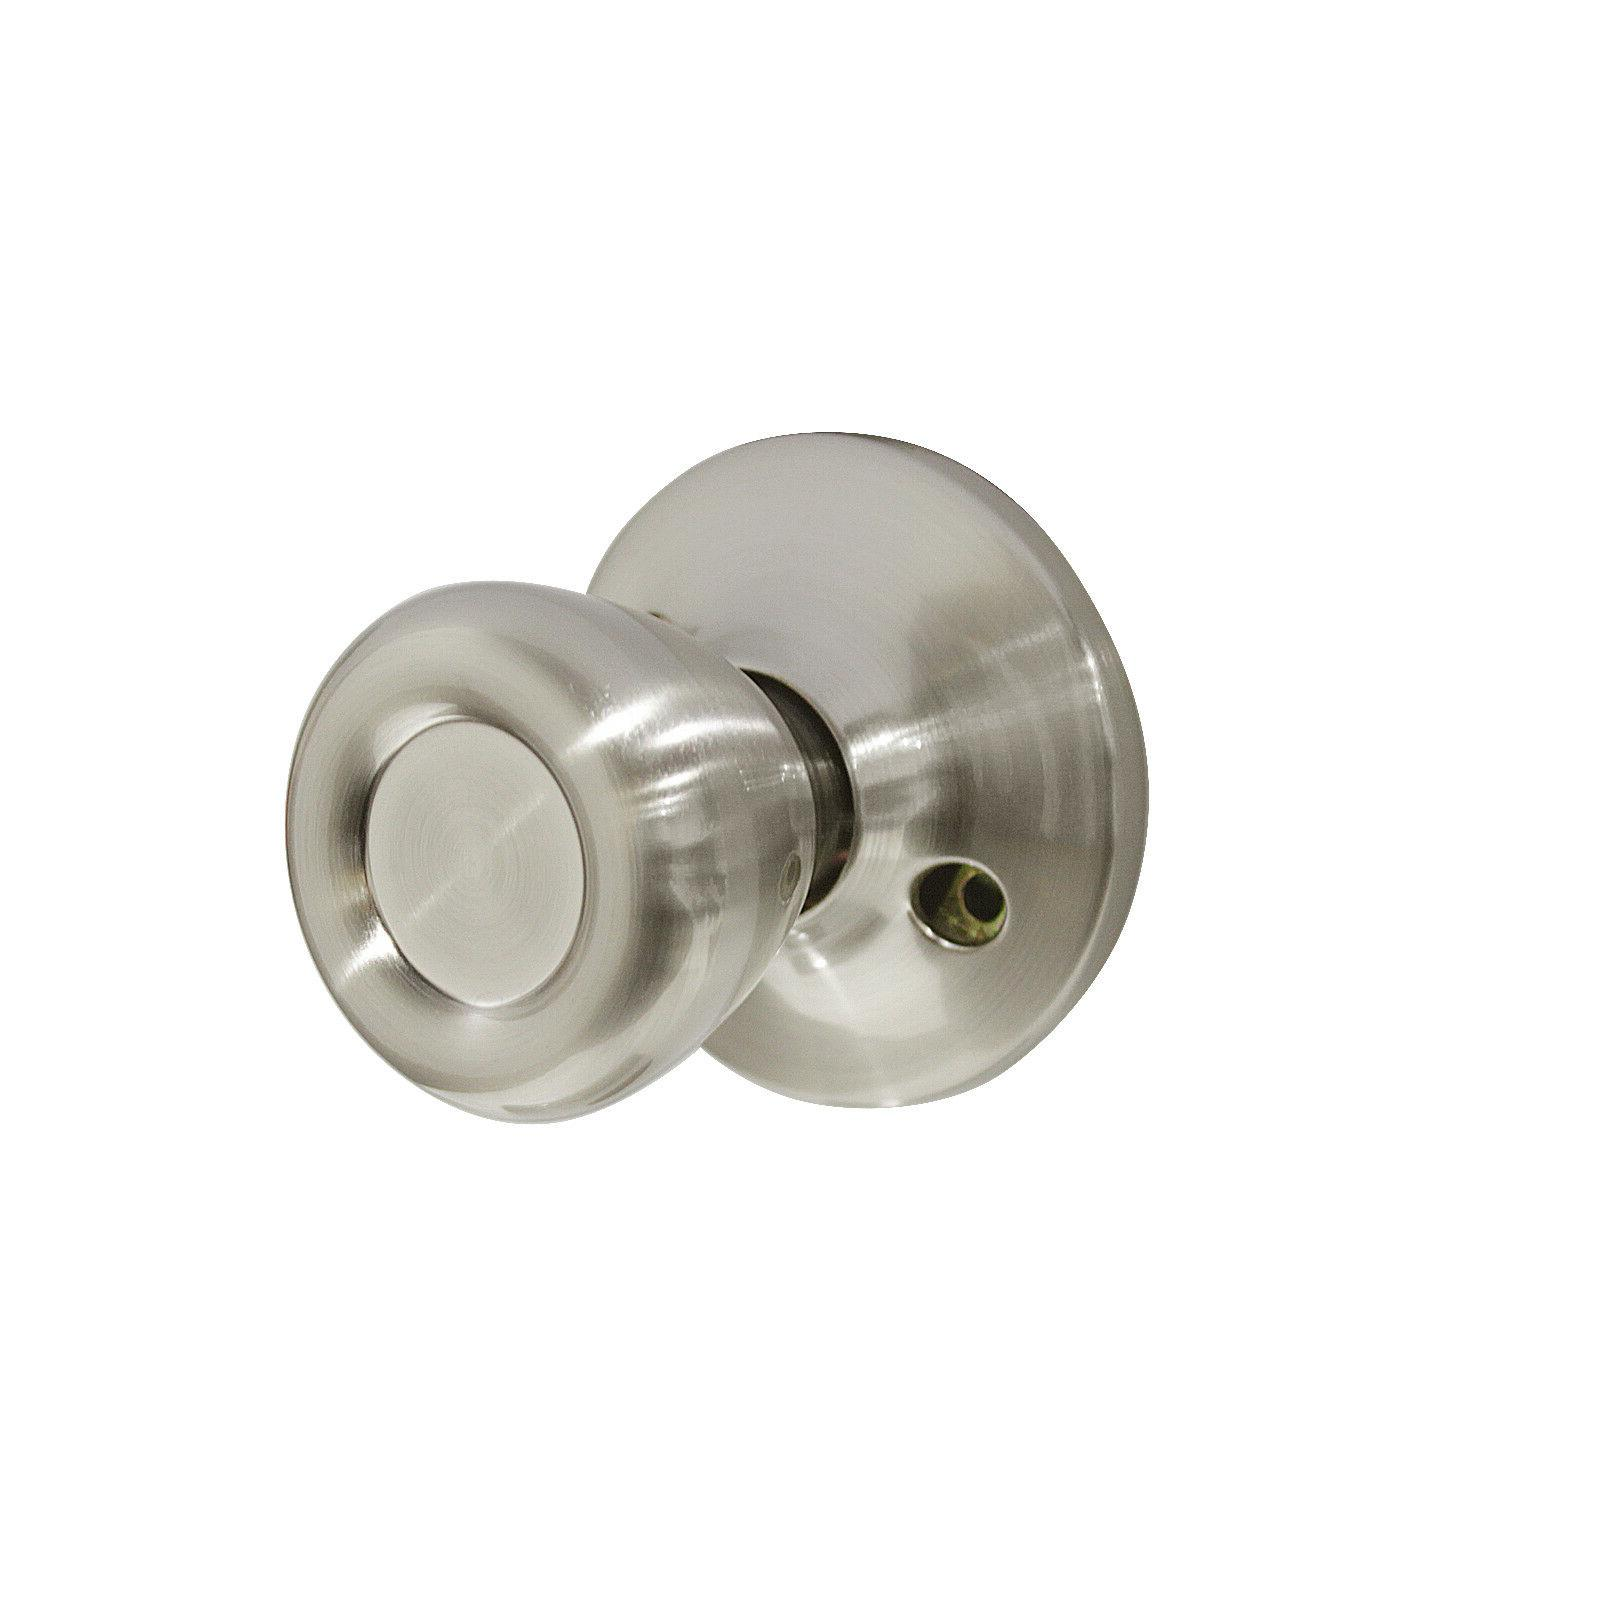 Passage Door and Satin Nickel Locksets